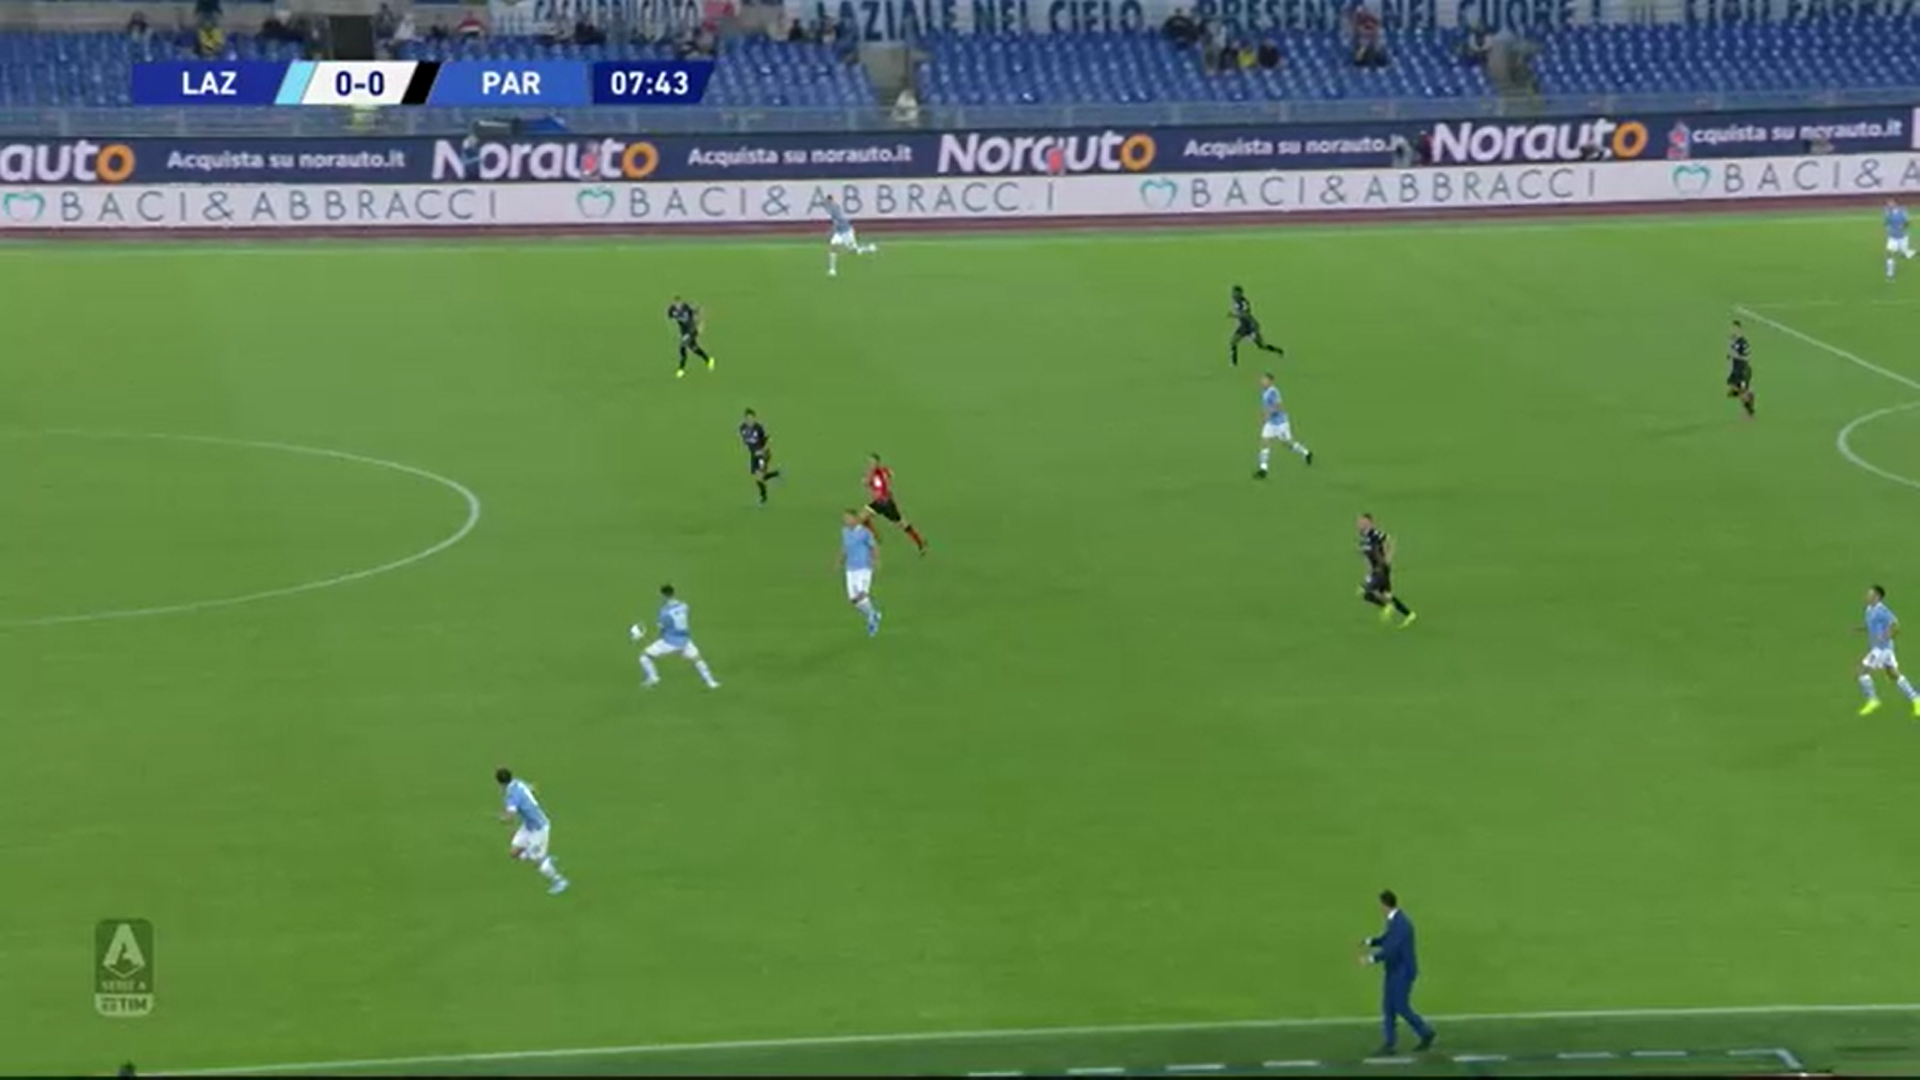 Serie A 2019/20: Lazio vs Parma - tactical analysis tactics